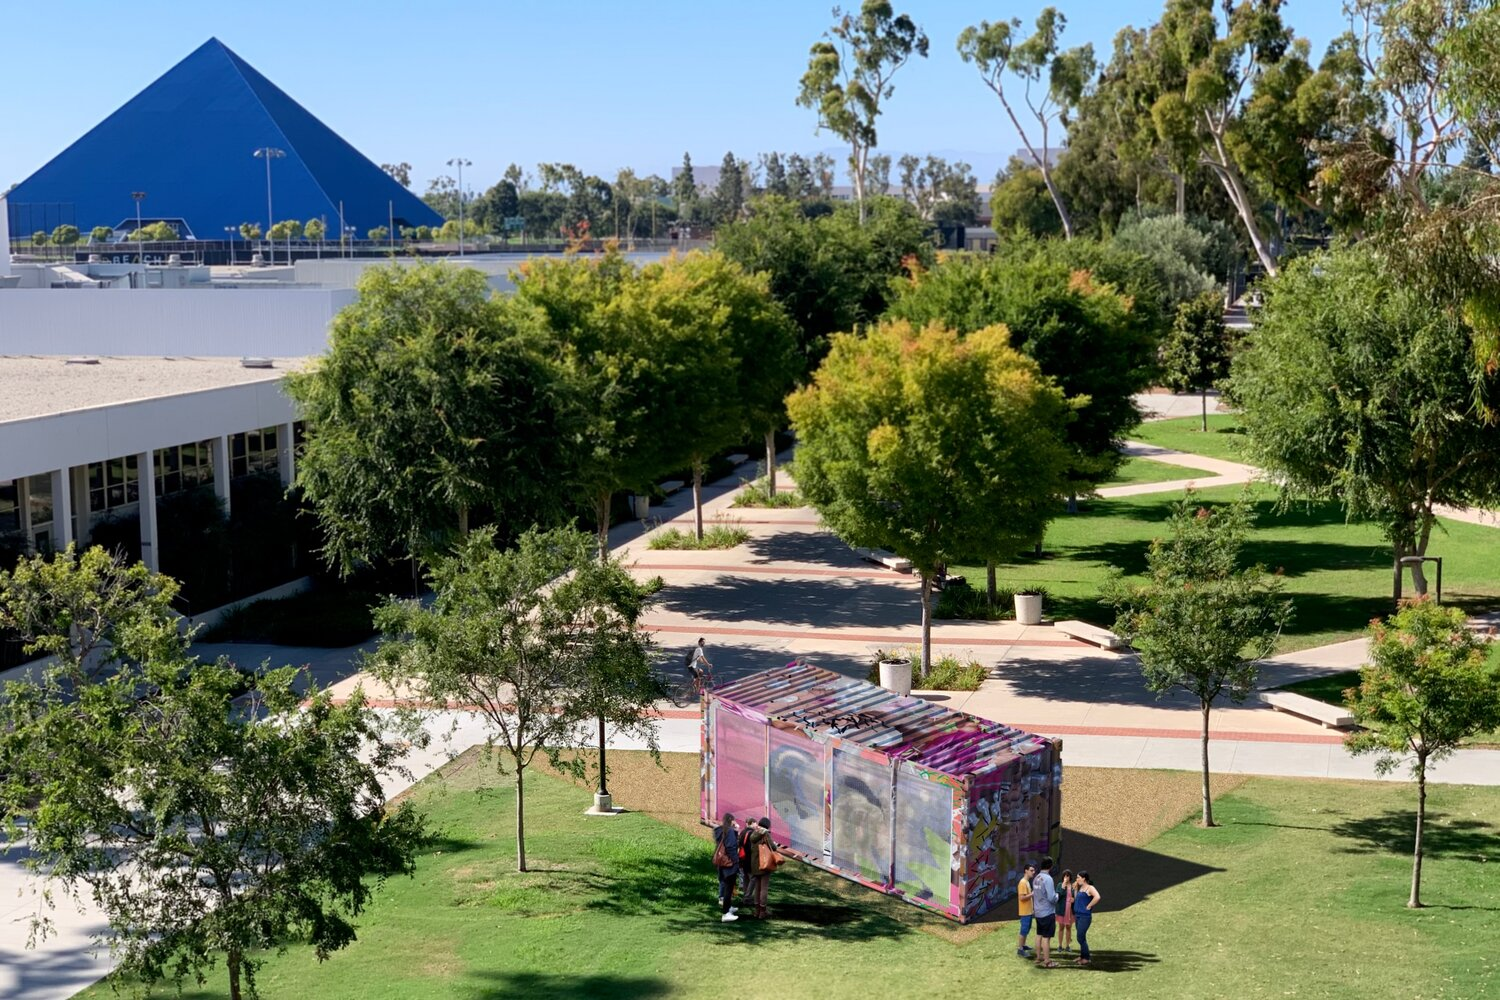 Csulb 2022 Calendar.Sm Art Box Sustainable Self Cooling Design Project Comes To Cal State Long Beach In December 2020 Design Ideas For The Built World